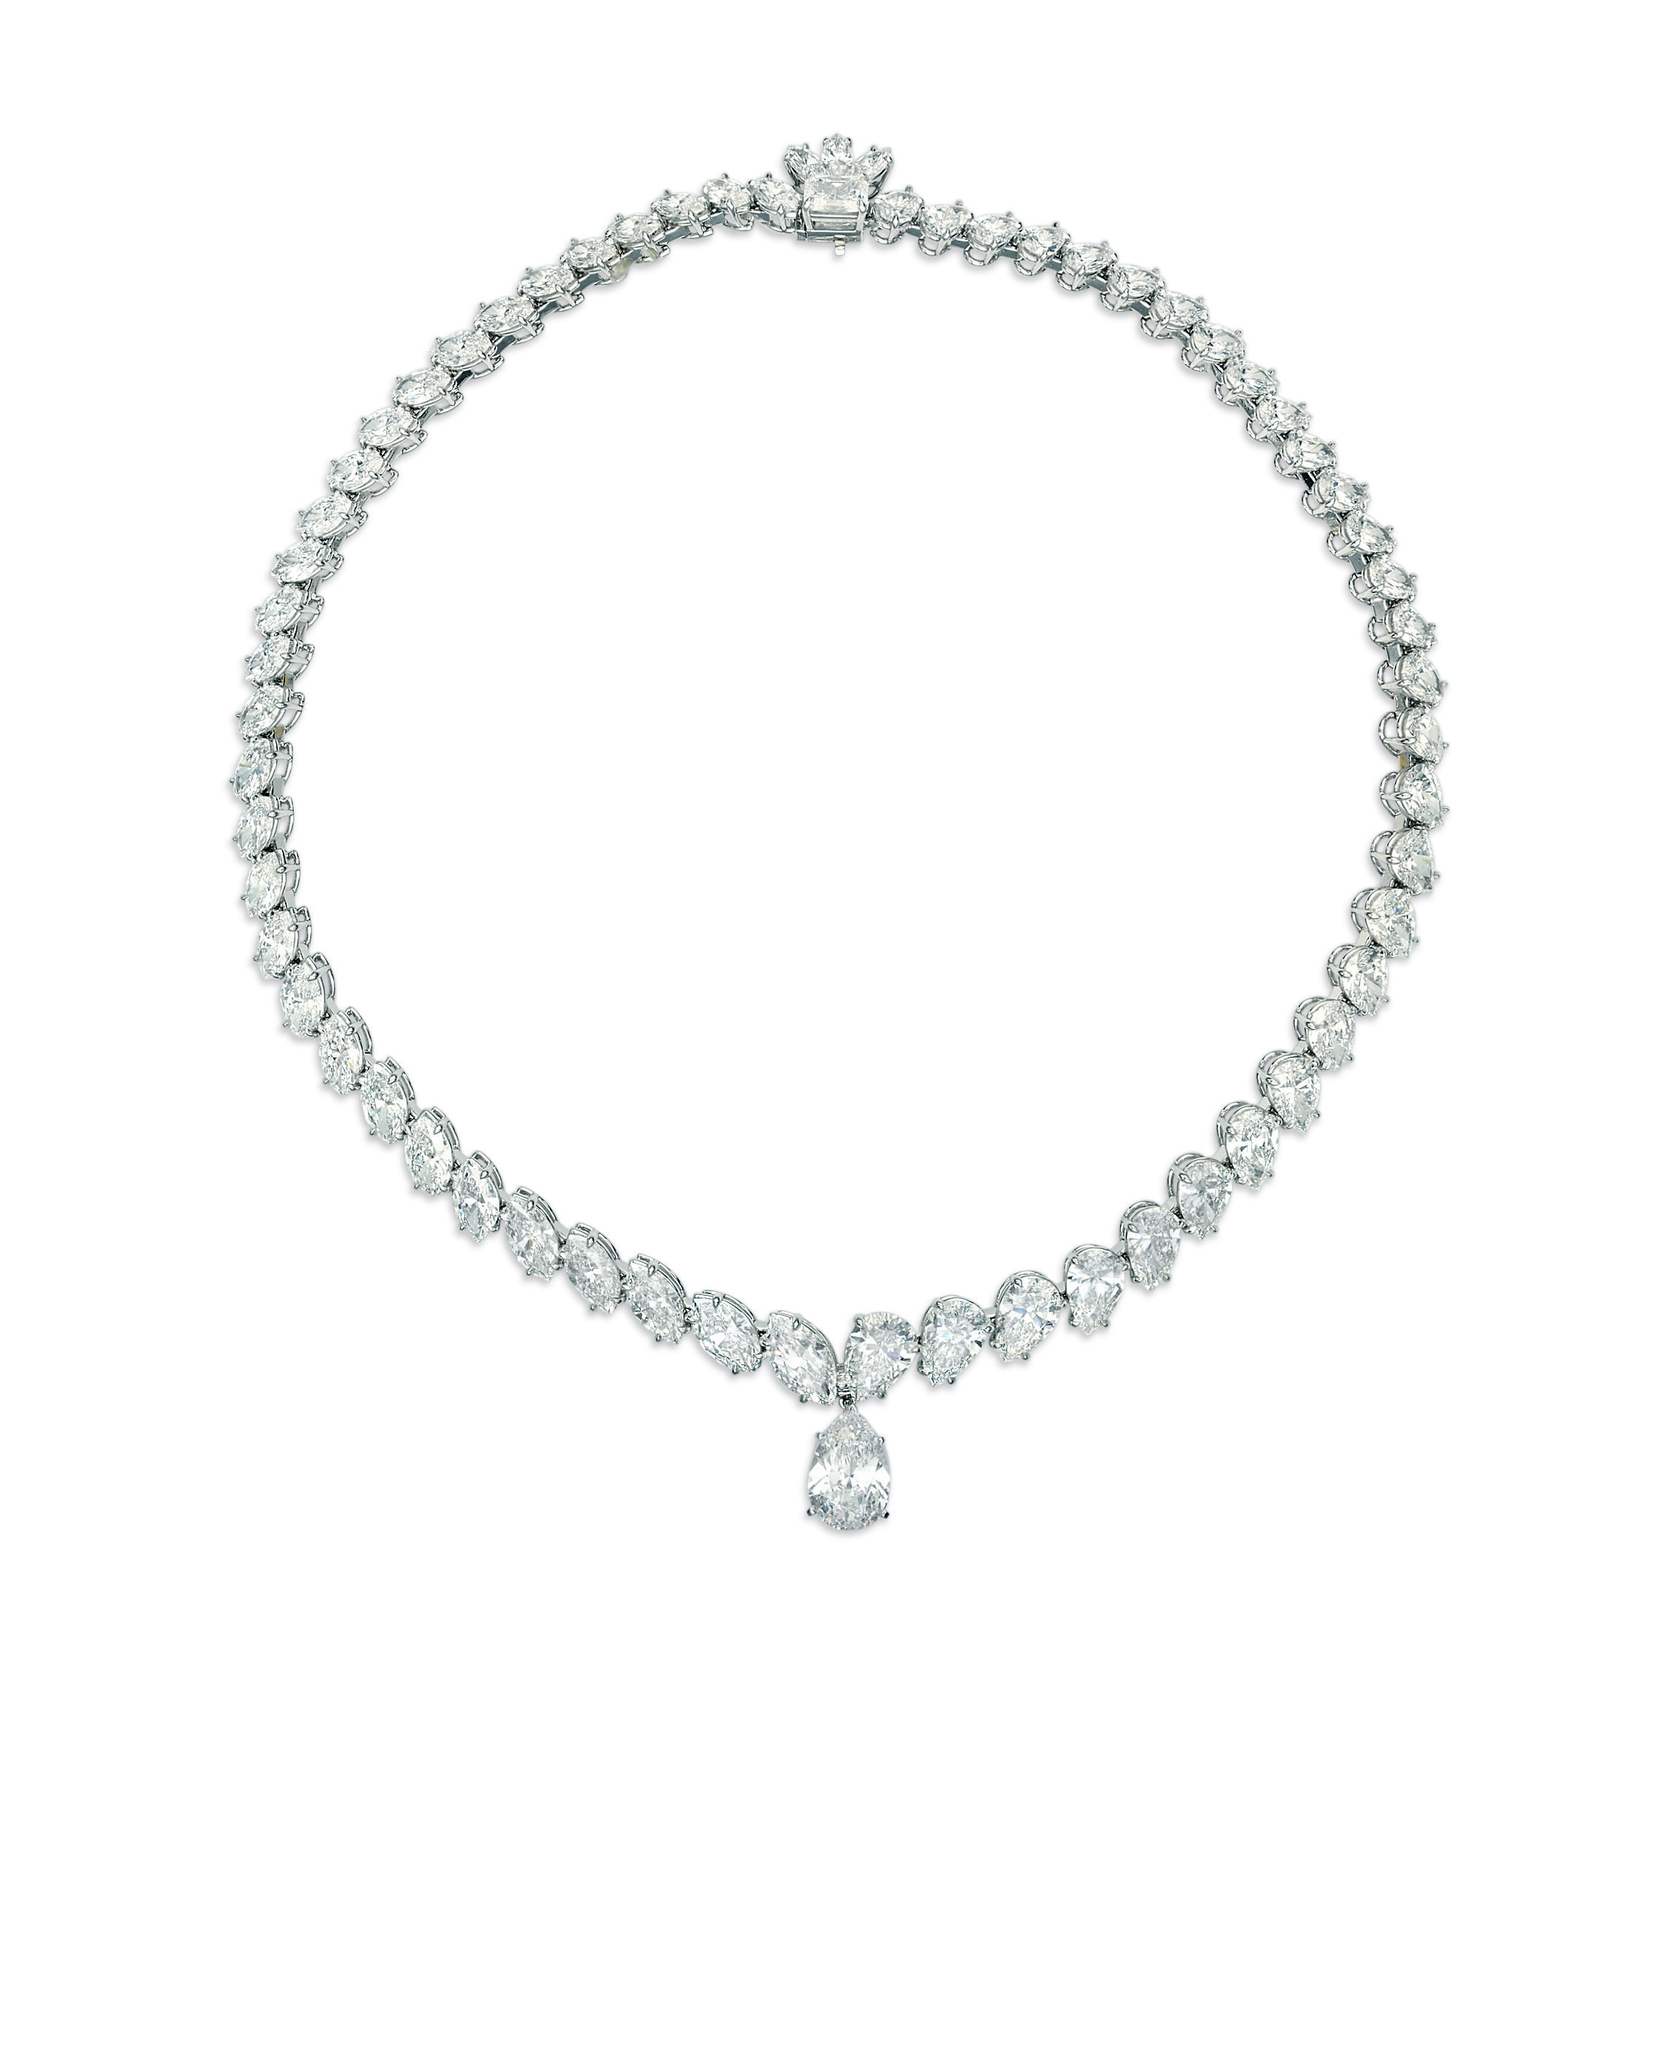 A diamond pendant necklace, by Tiffany & Co.